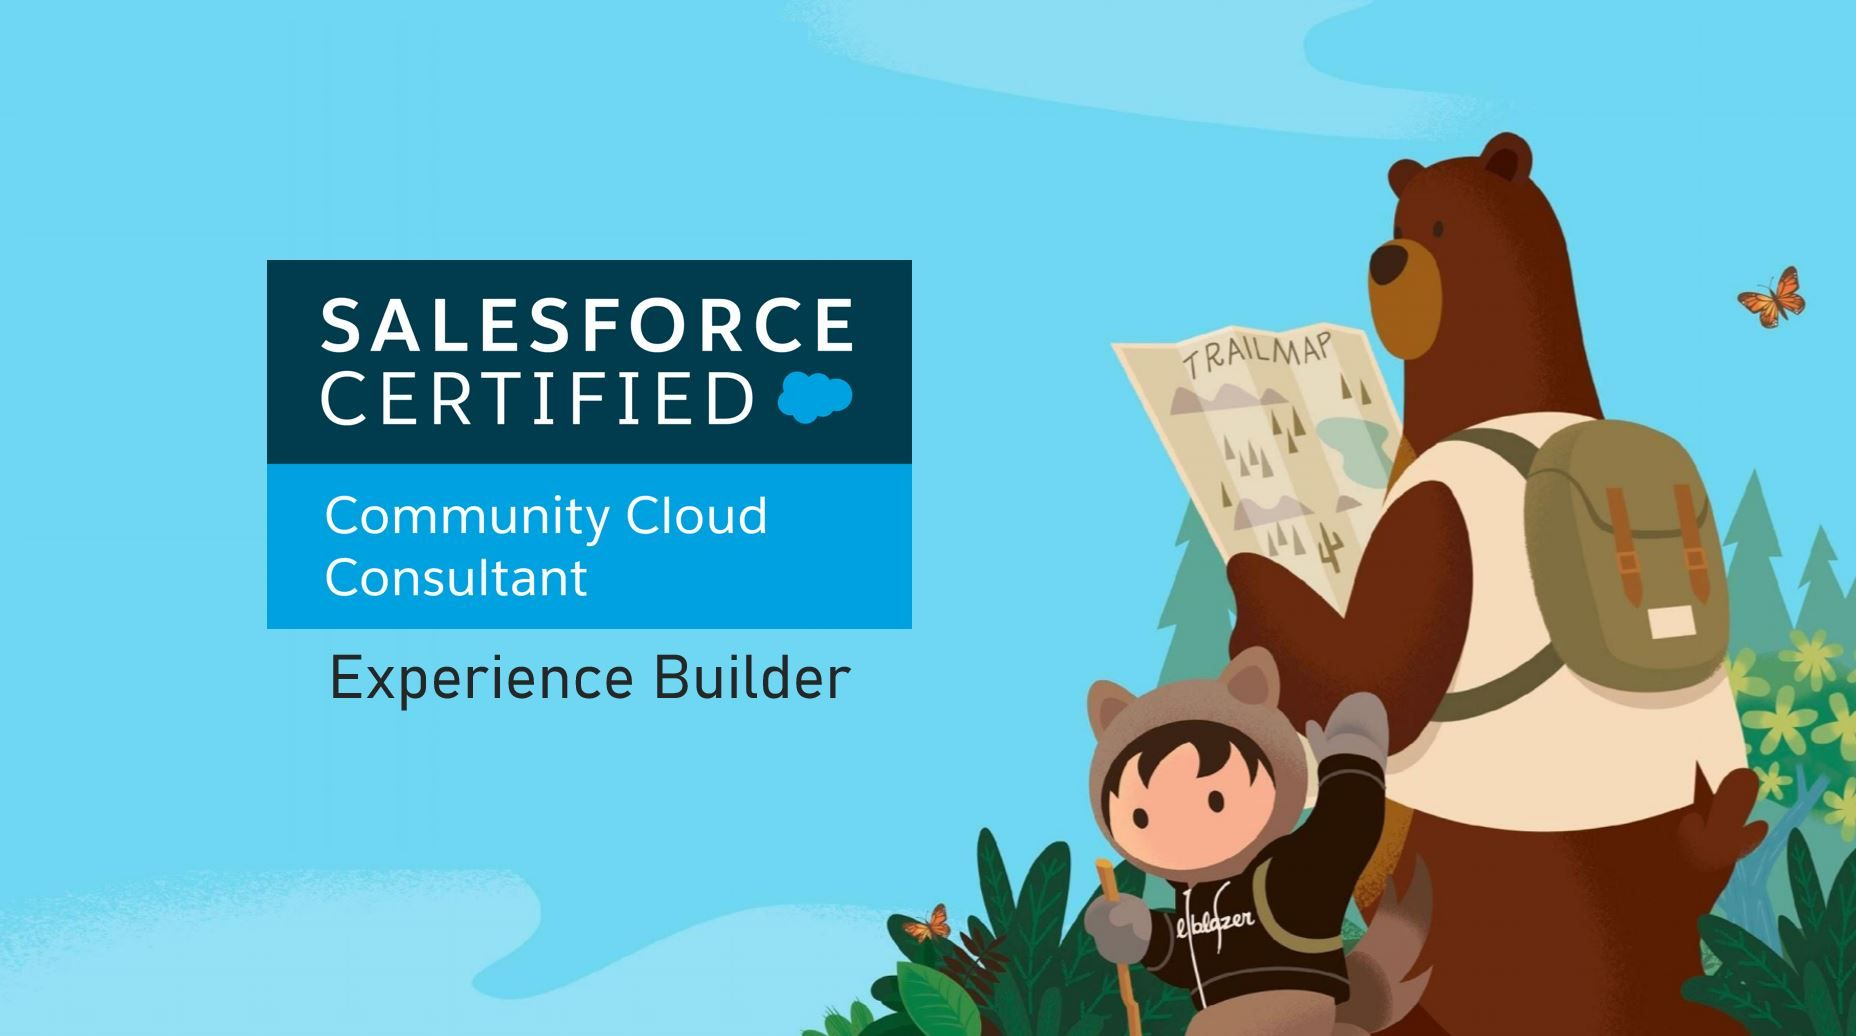 Salesforce Community Cloud Consultant Exam Preparation: Experience Builder